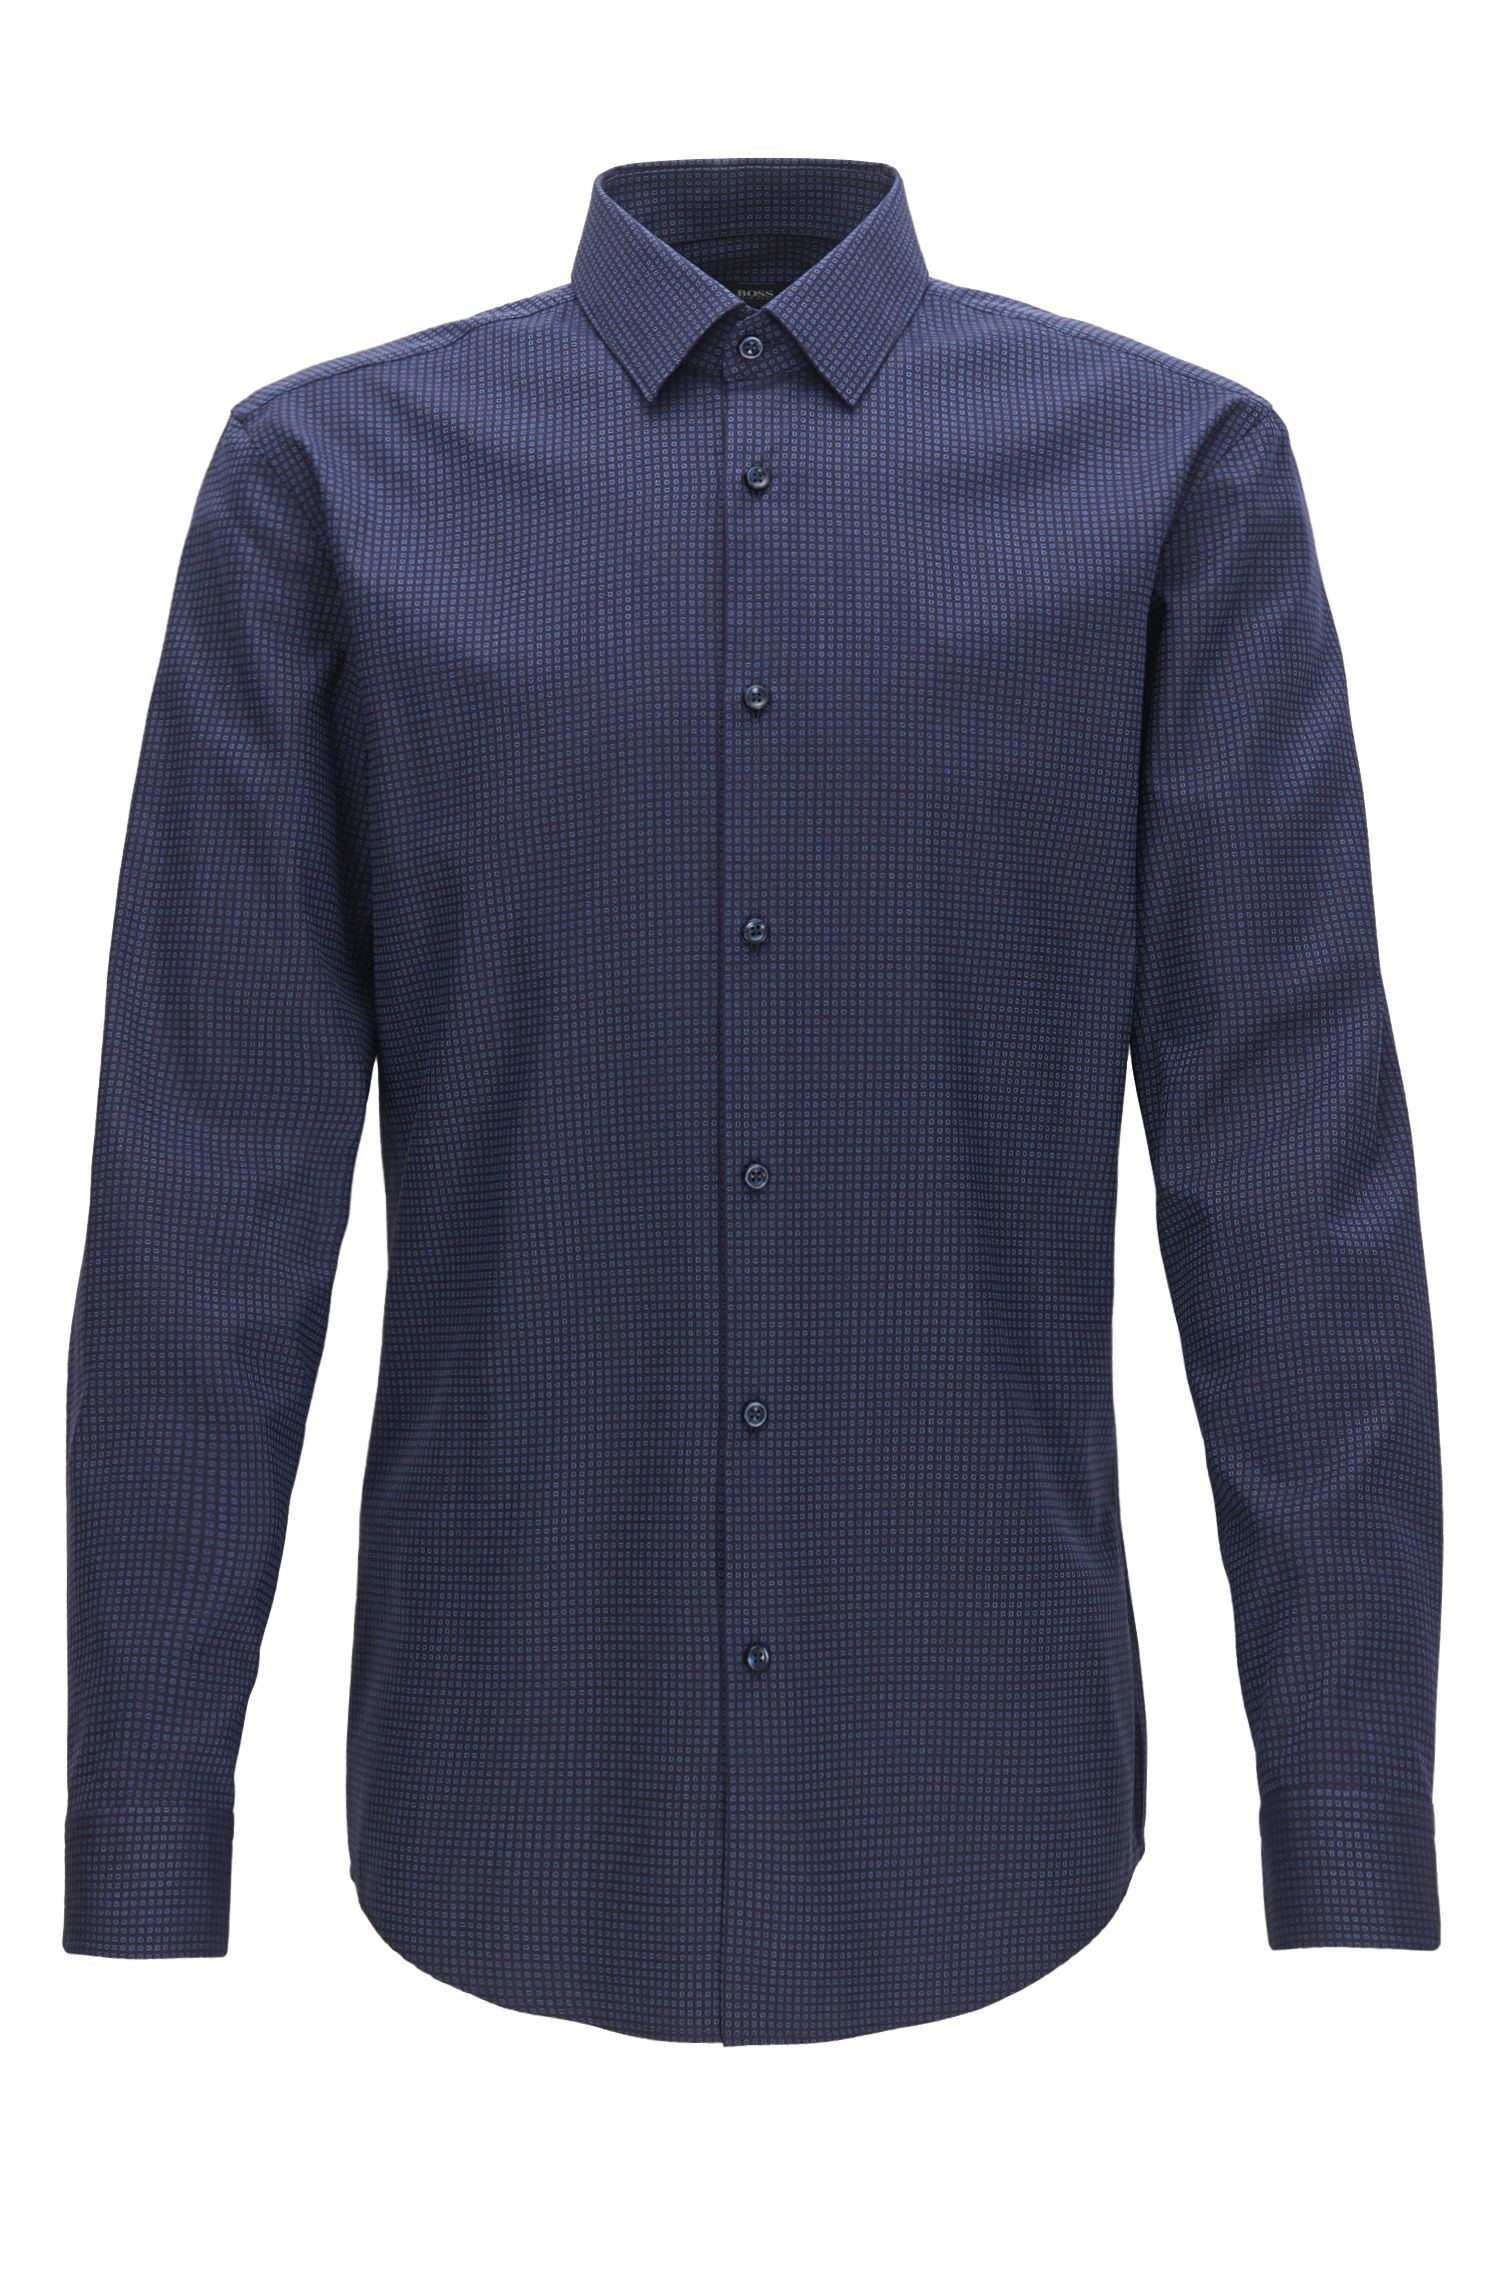 Patterned Stretch Cotton Dress Shirt, Slim Fit | Isko